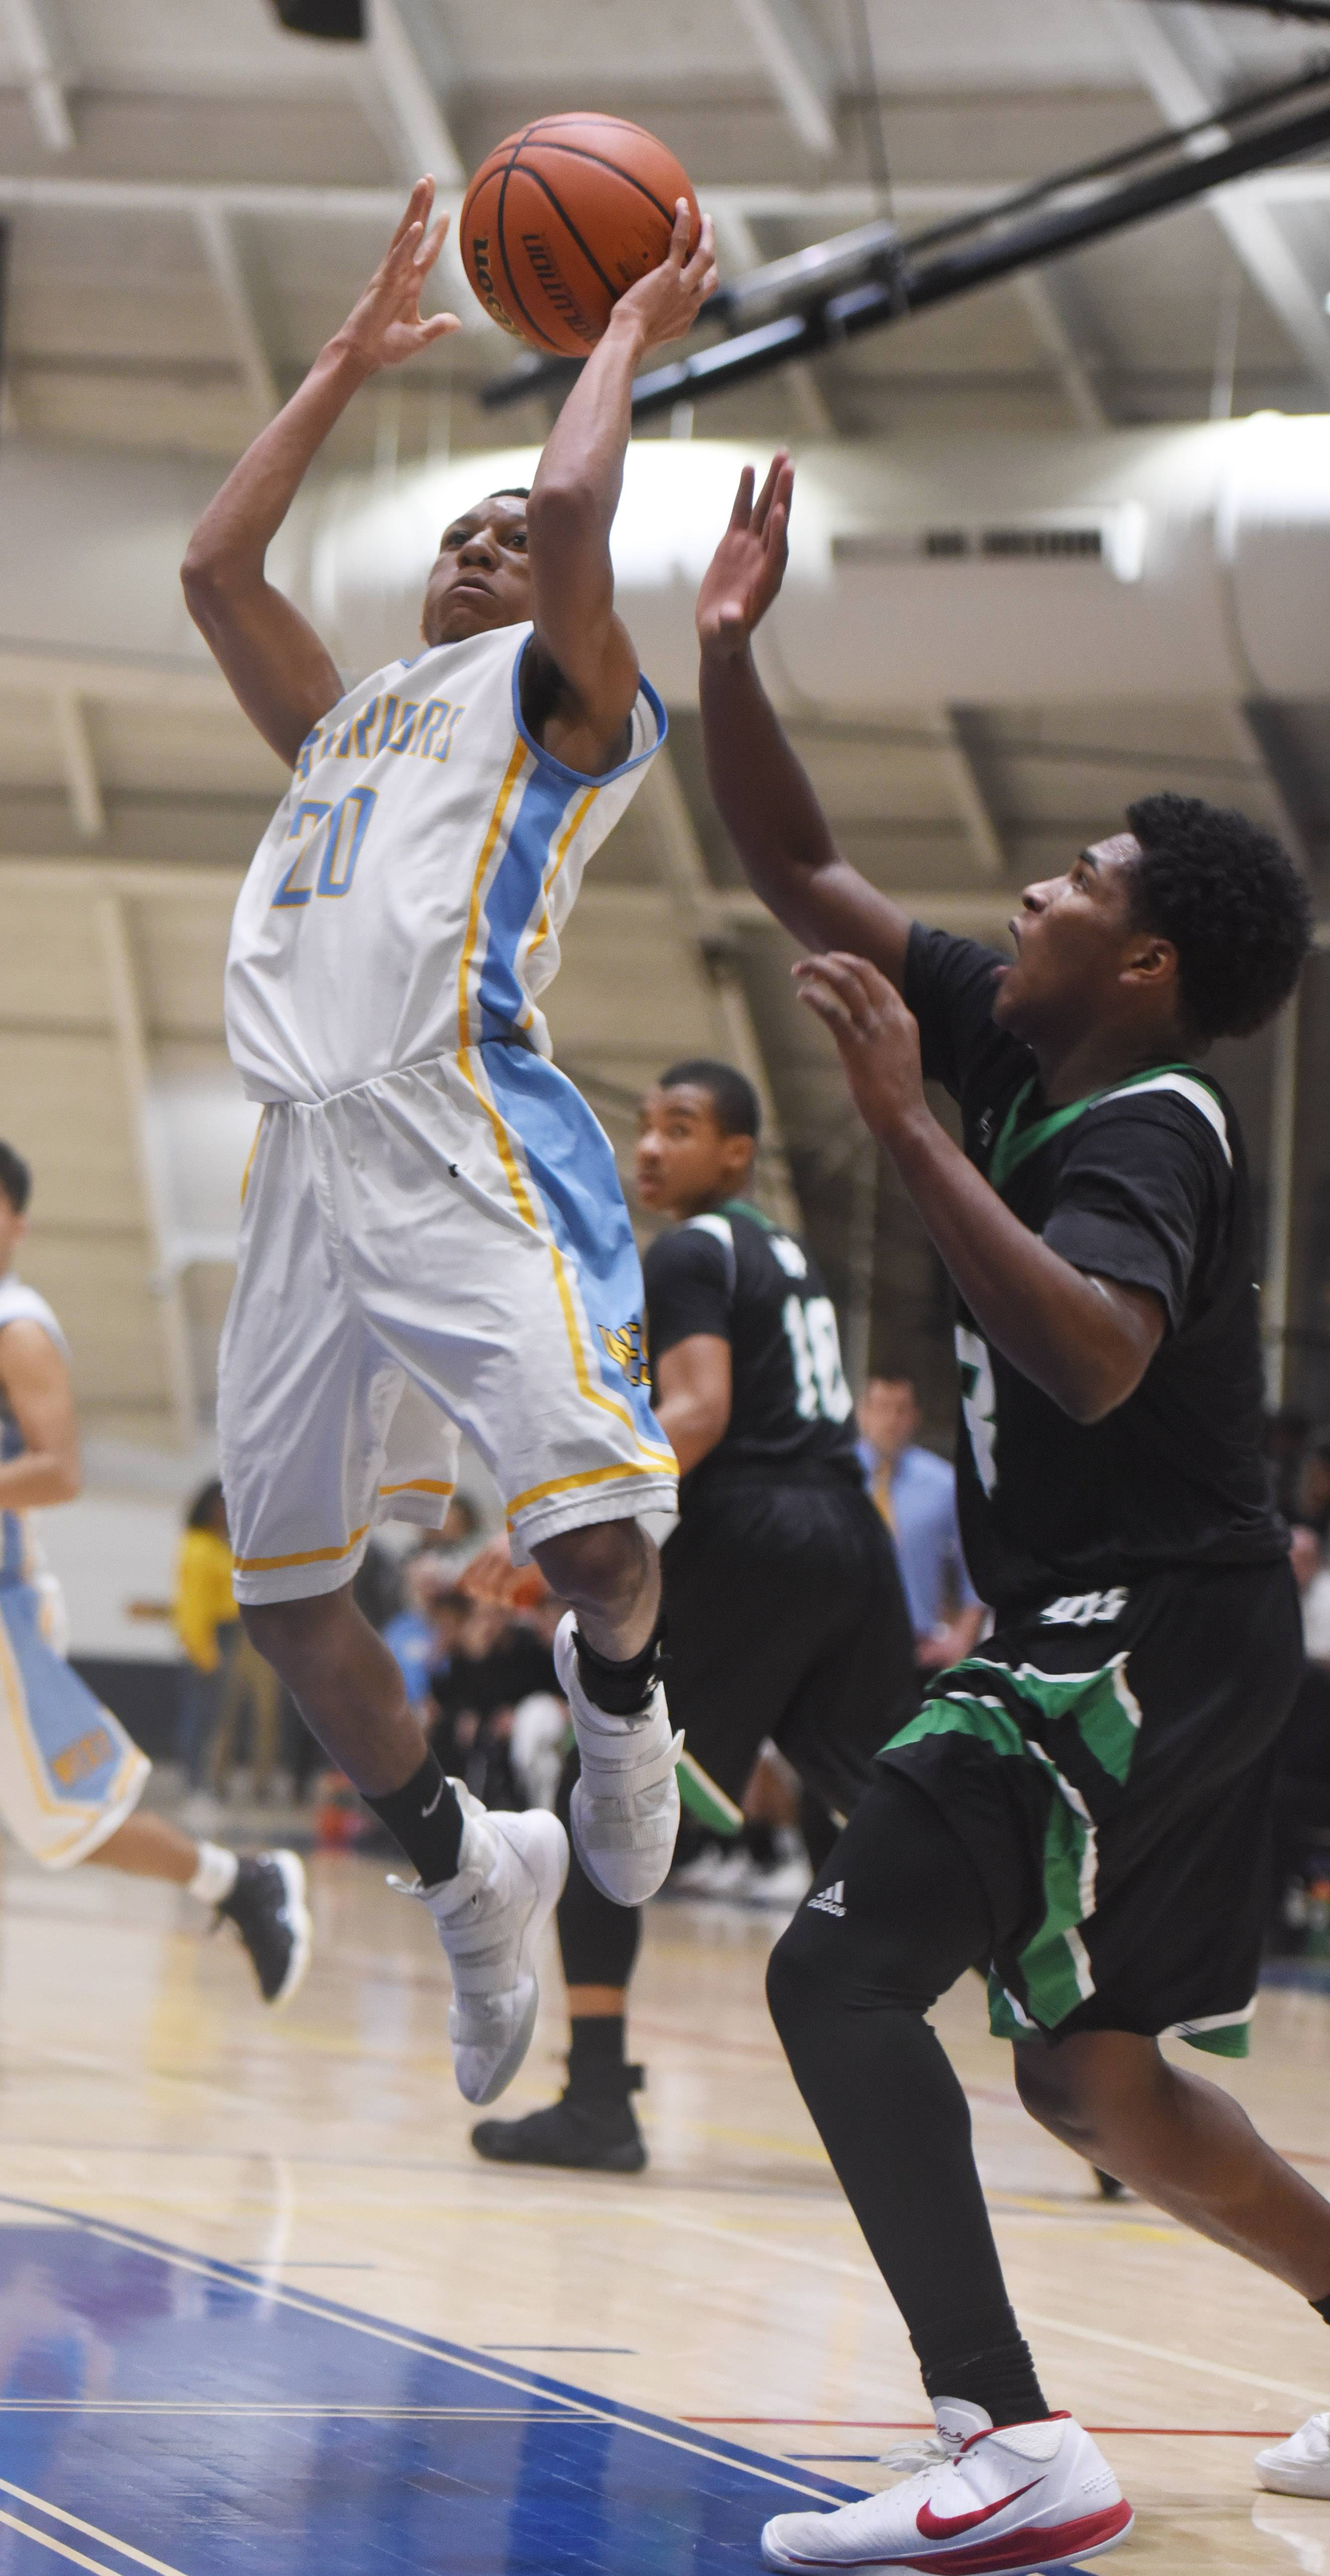 Maine West's Darrington Bates drives to the basket against Notre Dame defender Robert Milam Pryor during the Glenbrook South regional semifinal in Glenview Tuesday.